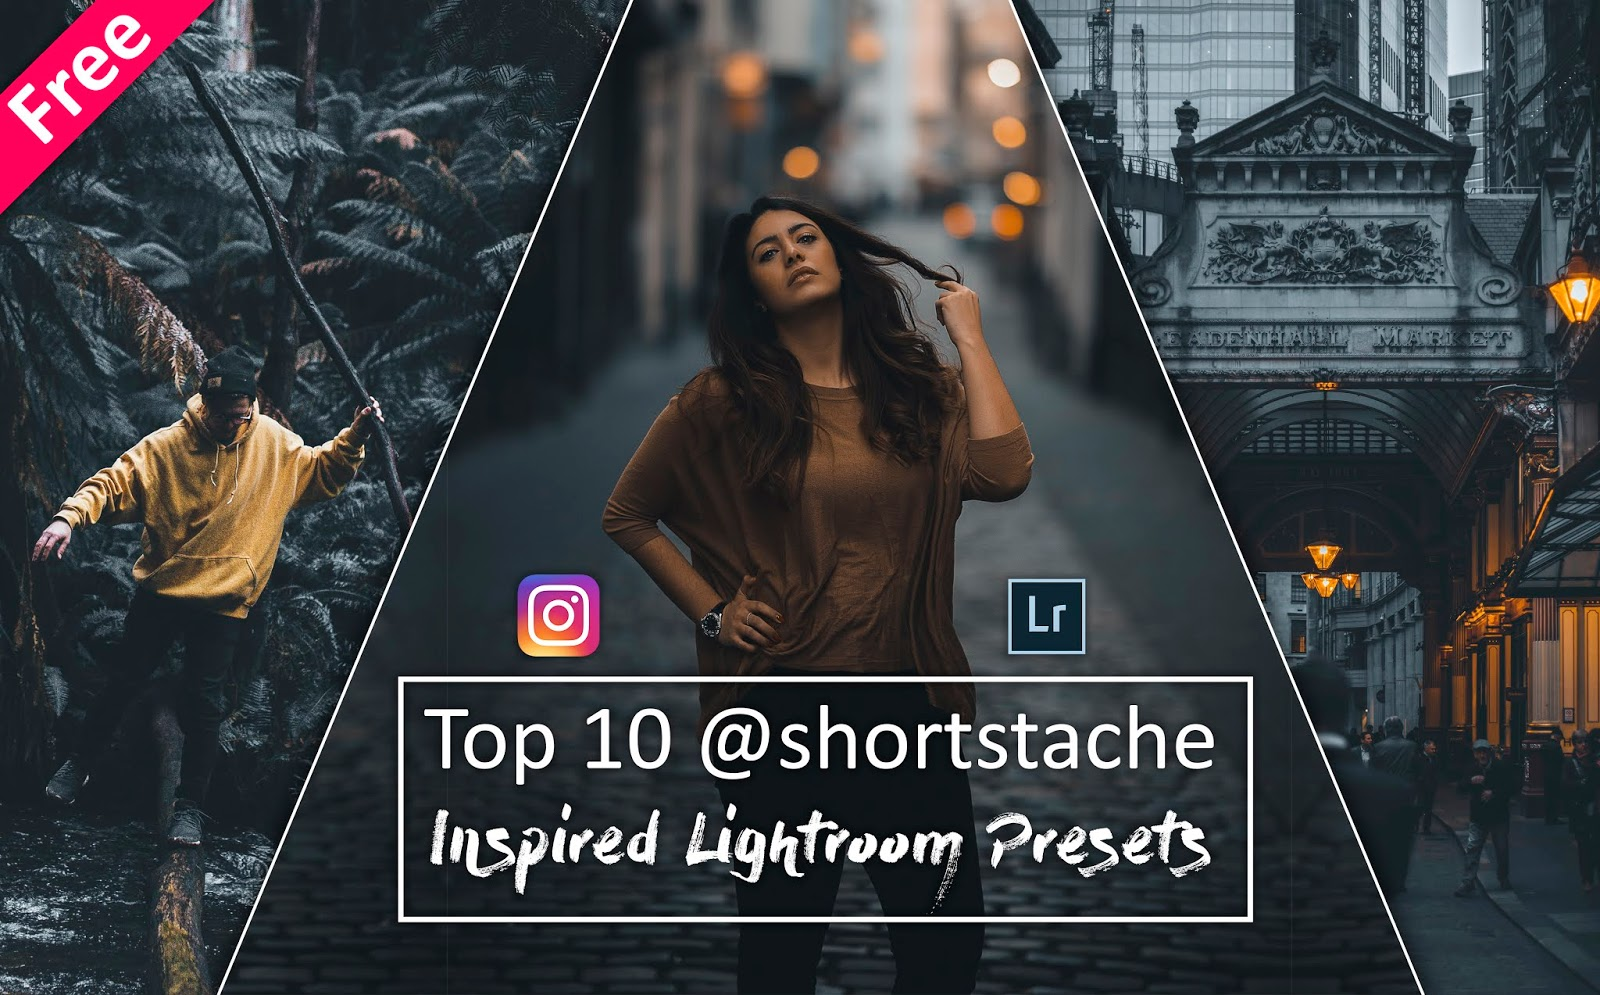 Get Top 10 @shortstache Inspired Lightroom Presets for Free | How to Edit Photos Like @shortstache in Lightroom